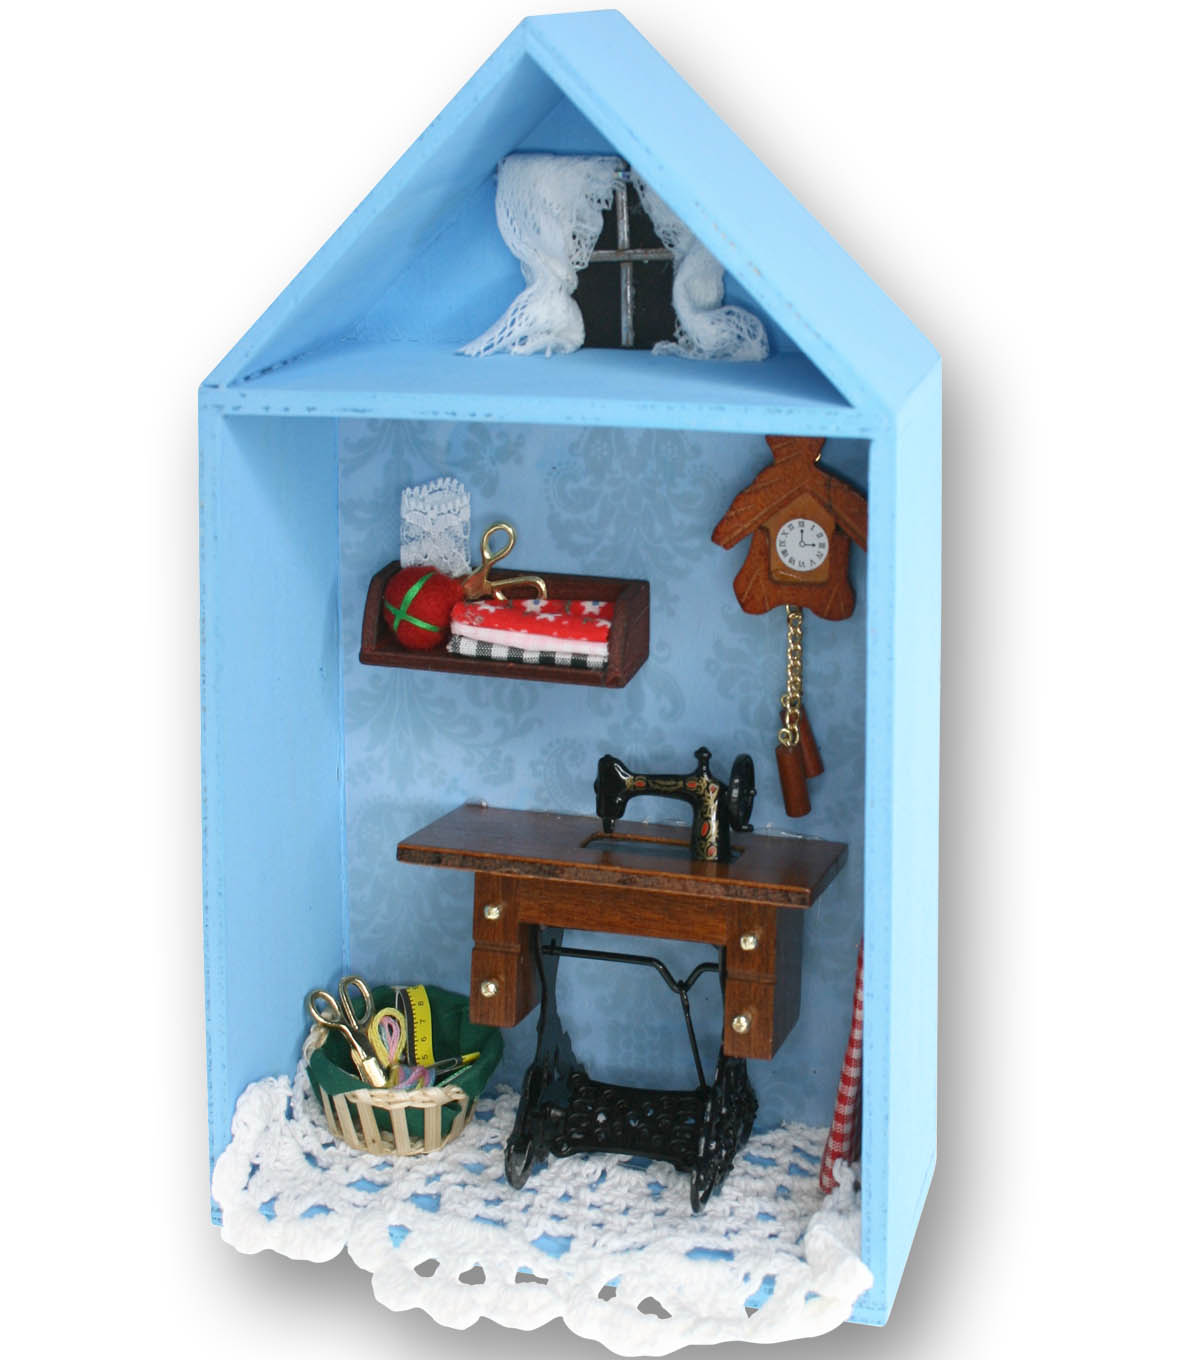 Sewing Room Miniature Display box